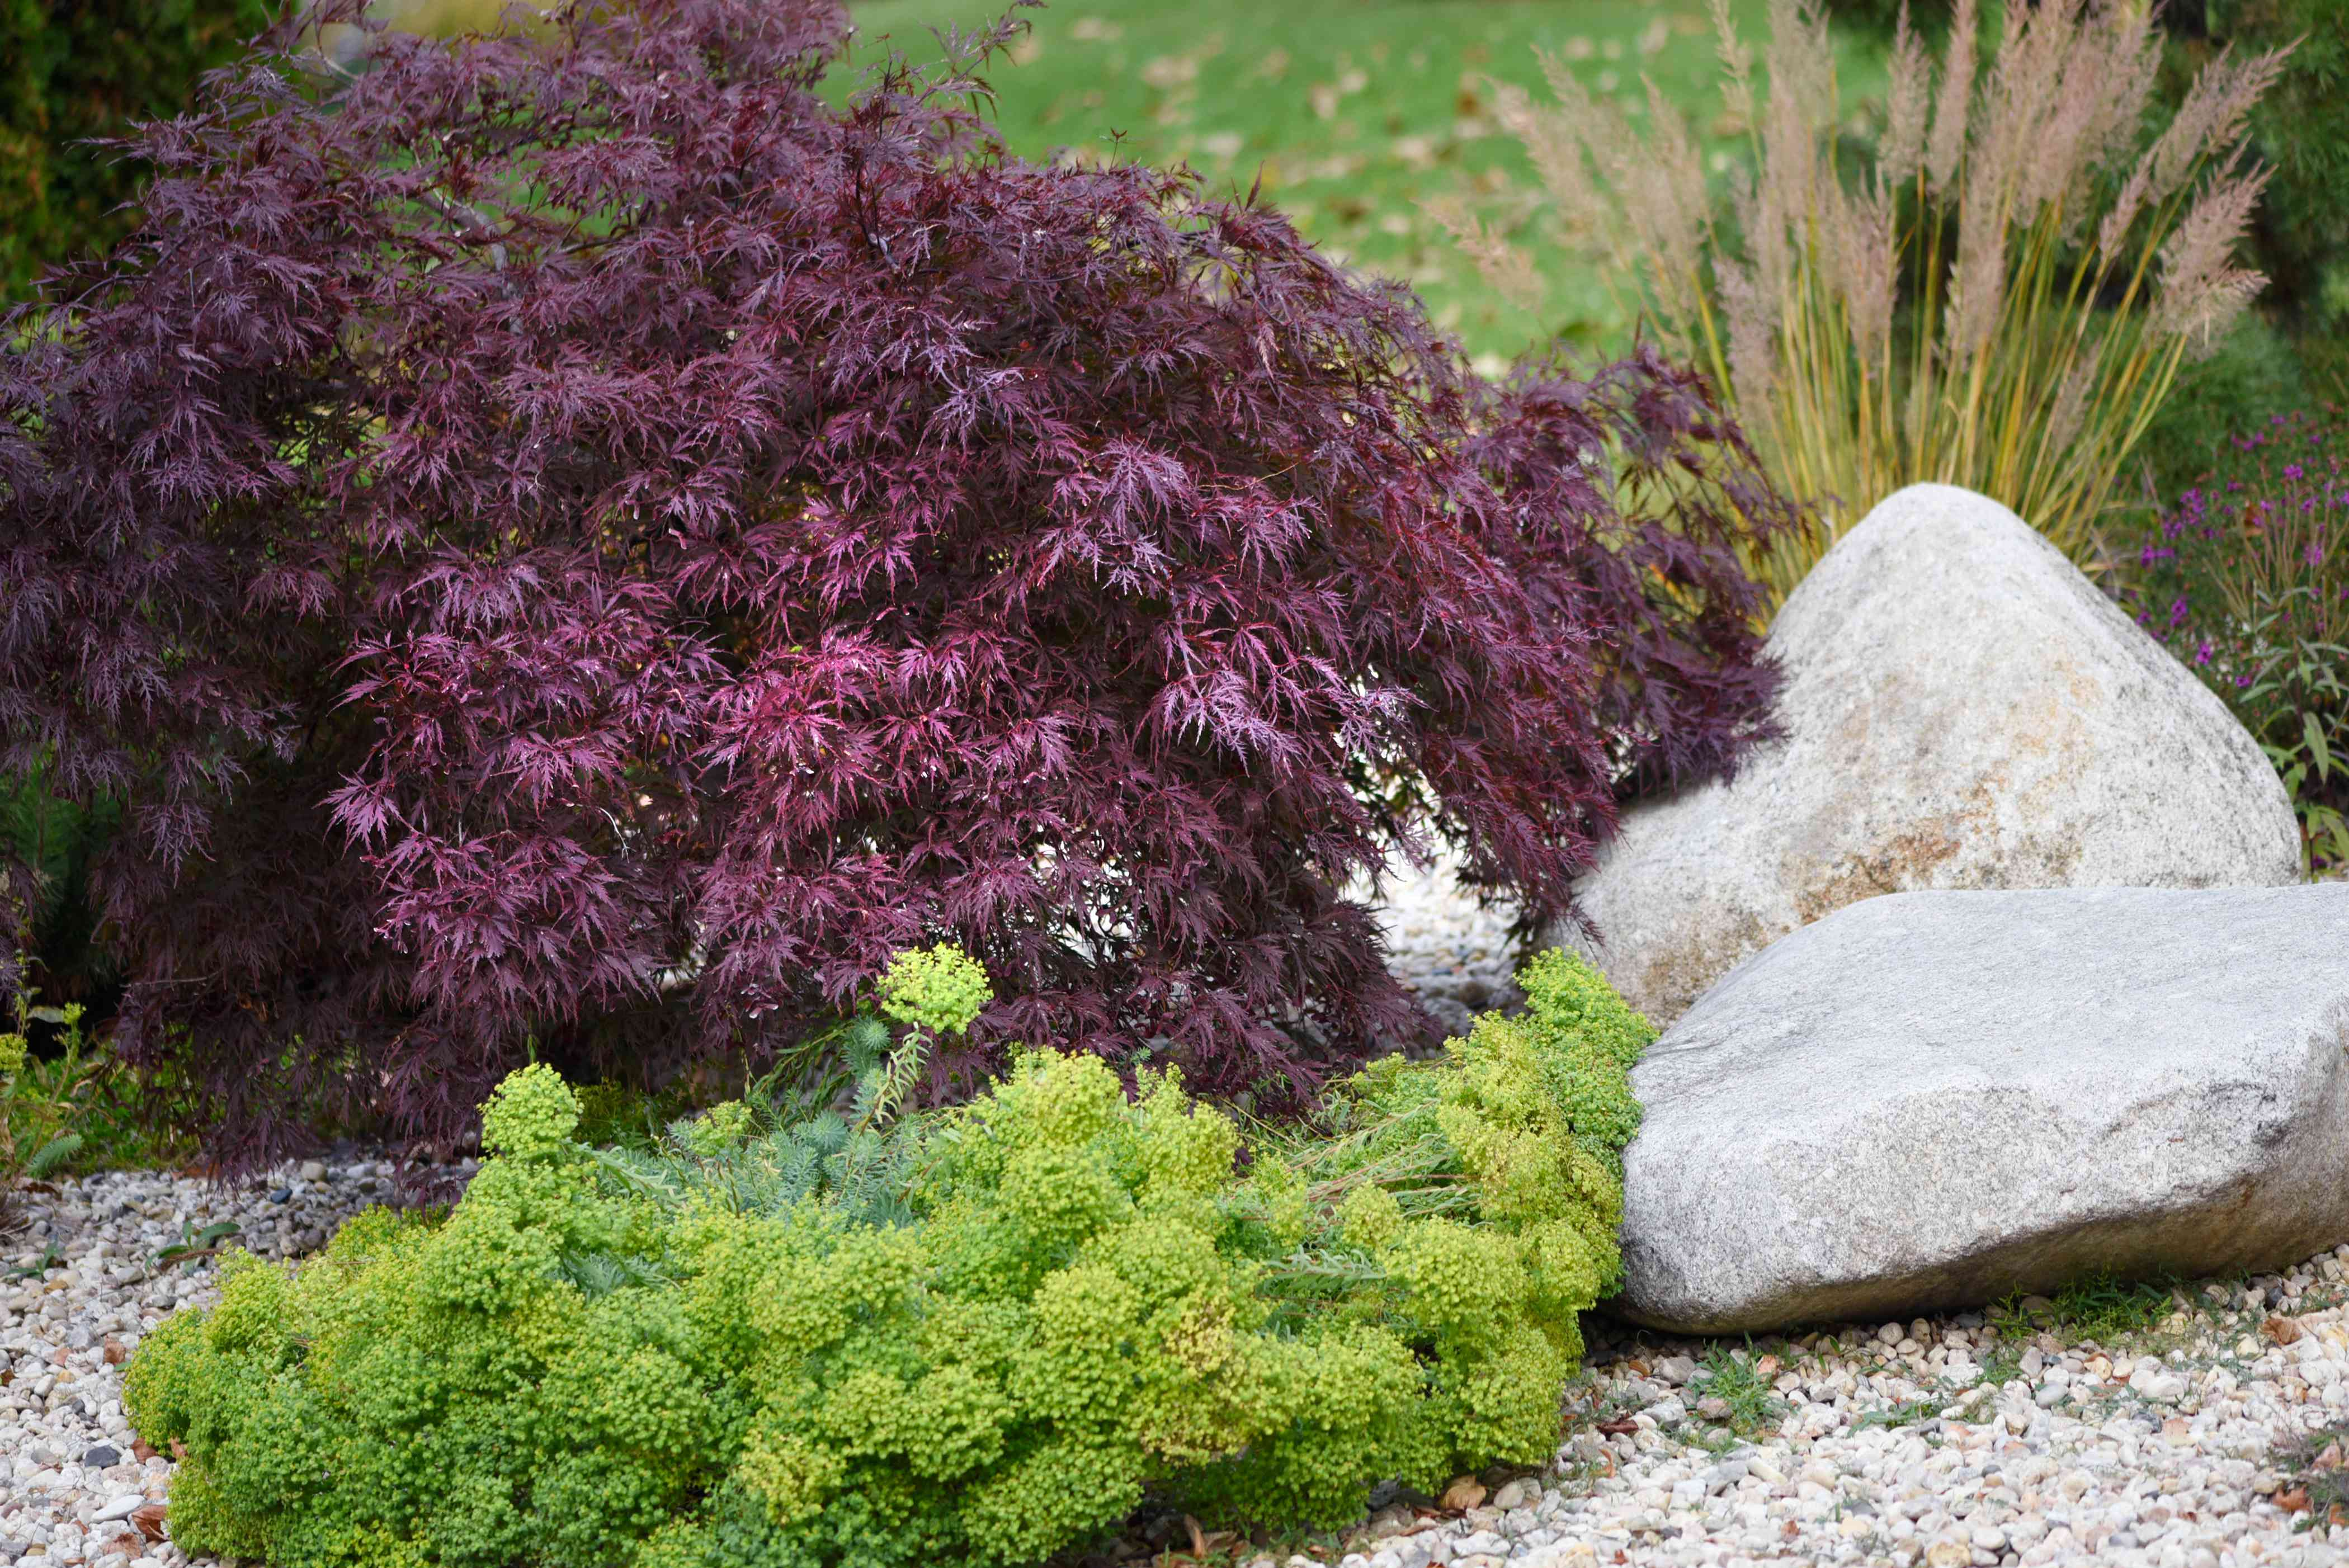 Red dragon Japanese maple tree next to white boulders and bright green bush